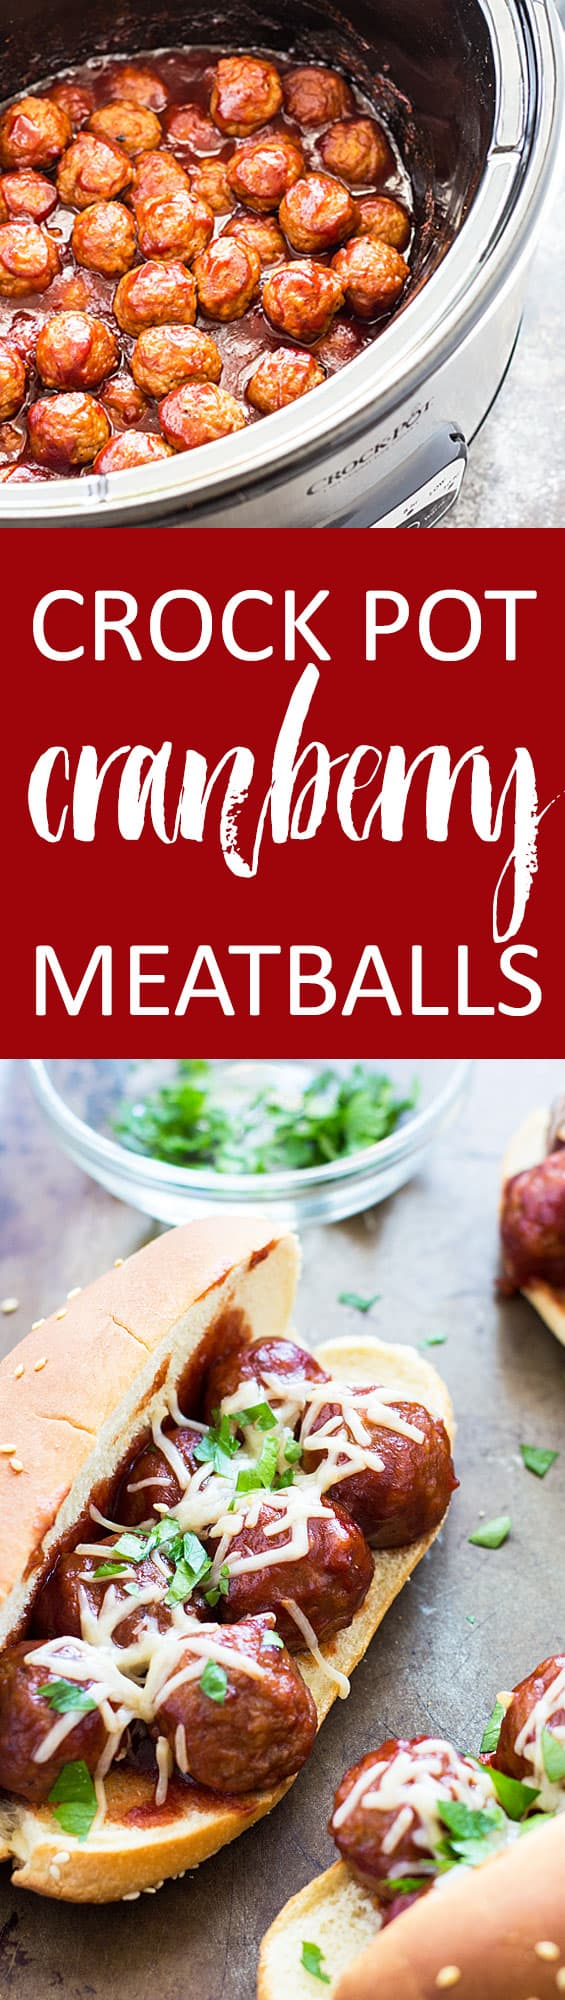 Crock Pot Cranberry Meatballs